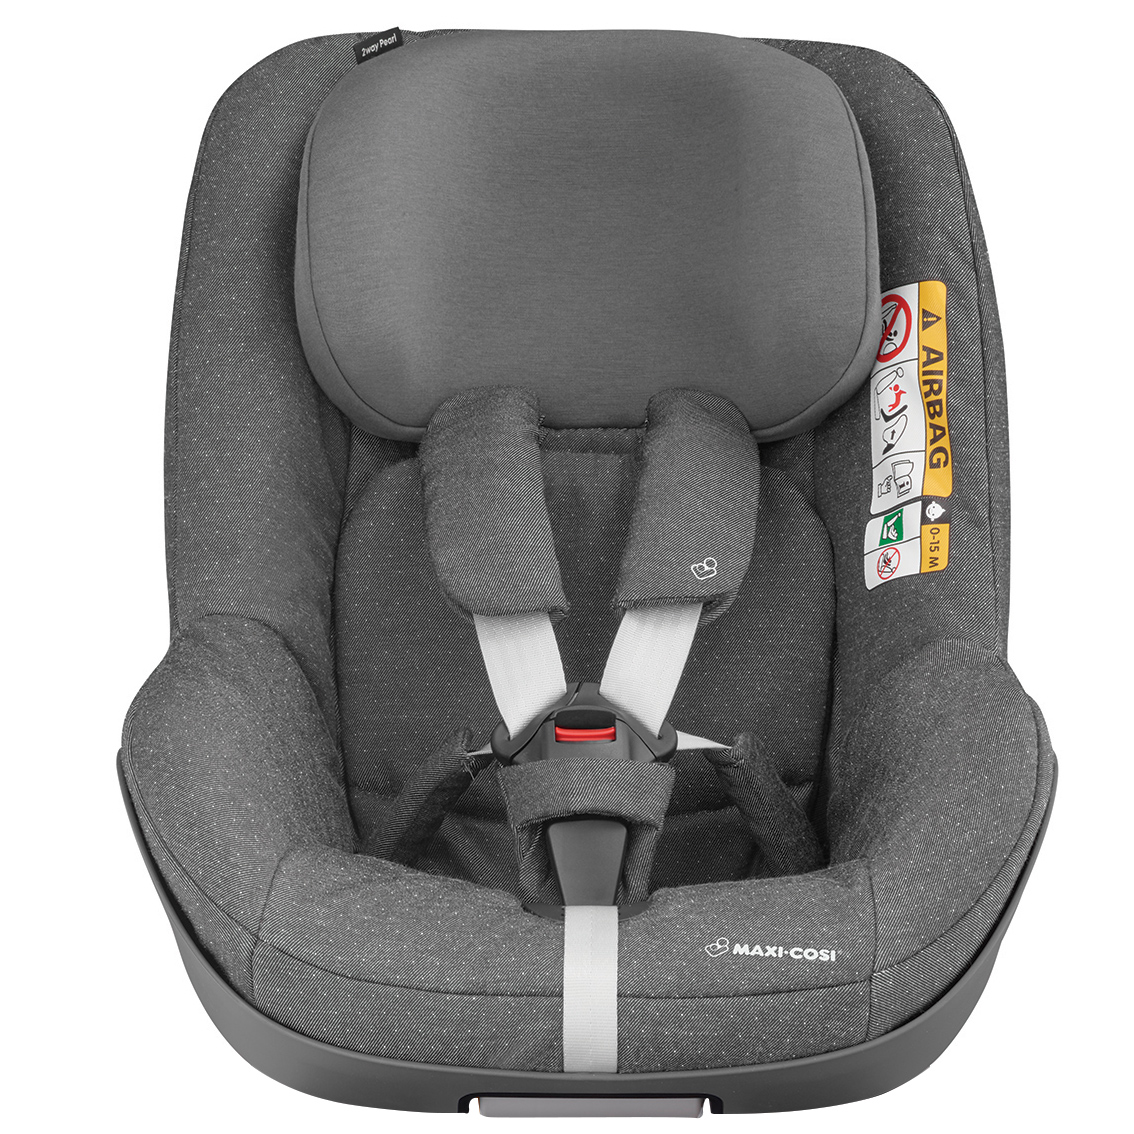 Si ge d enfant maxi cosi 2way pearl 2018 sparkling grey for Siege enfant